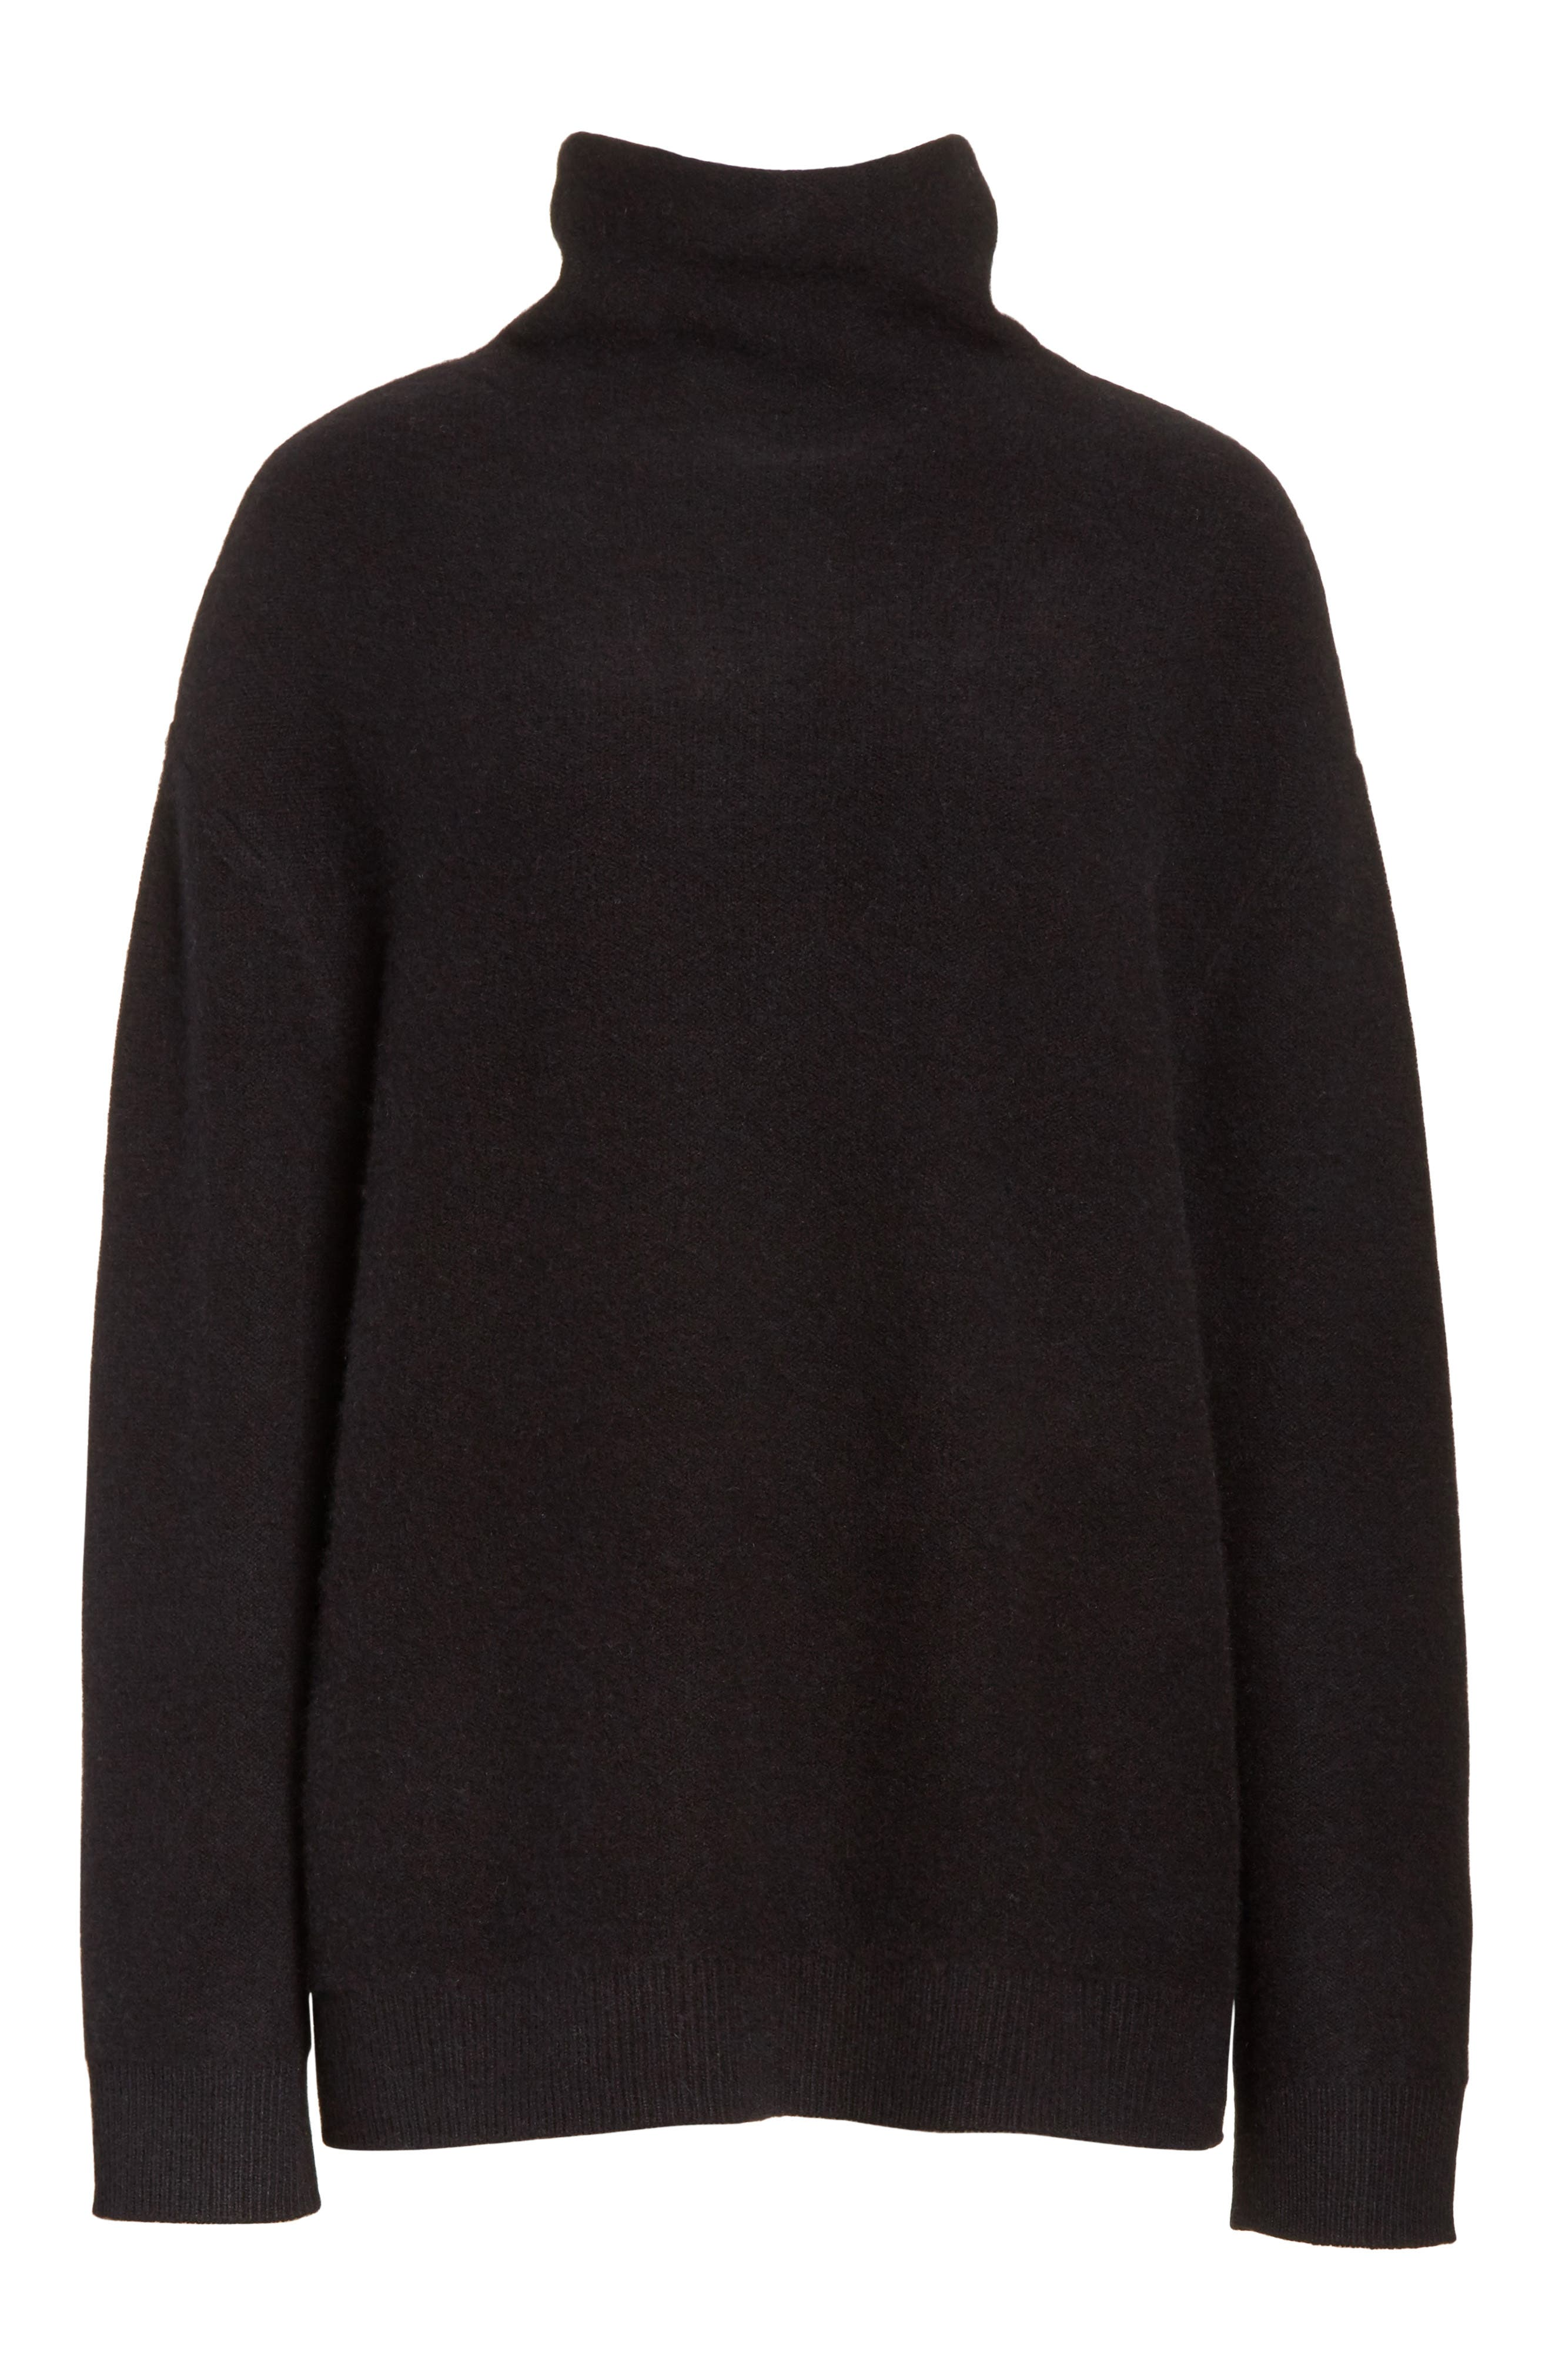 Boxy Mock Neck Cashmere Sweater,                             Alternate thumbnail 6, color,                             001